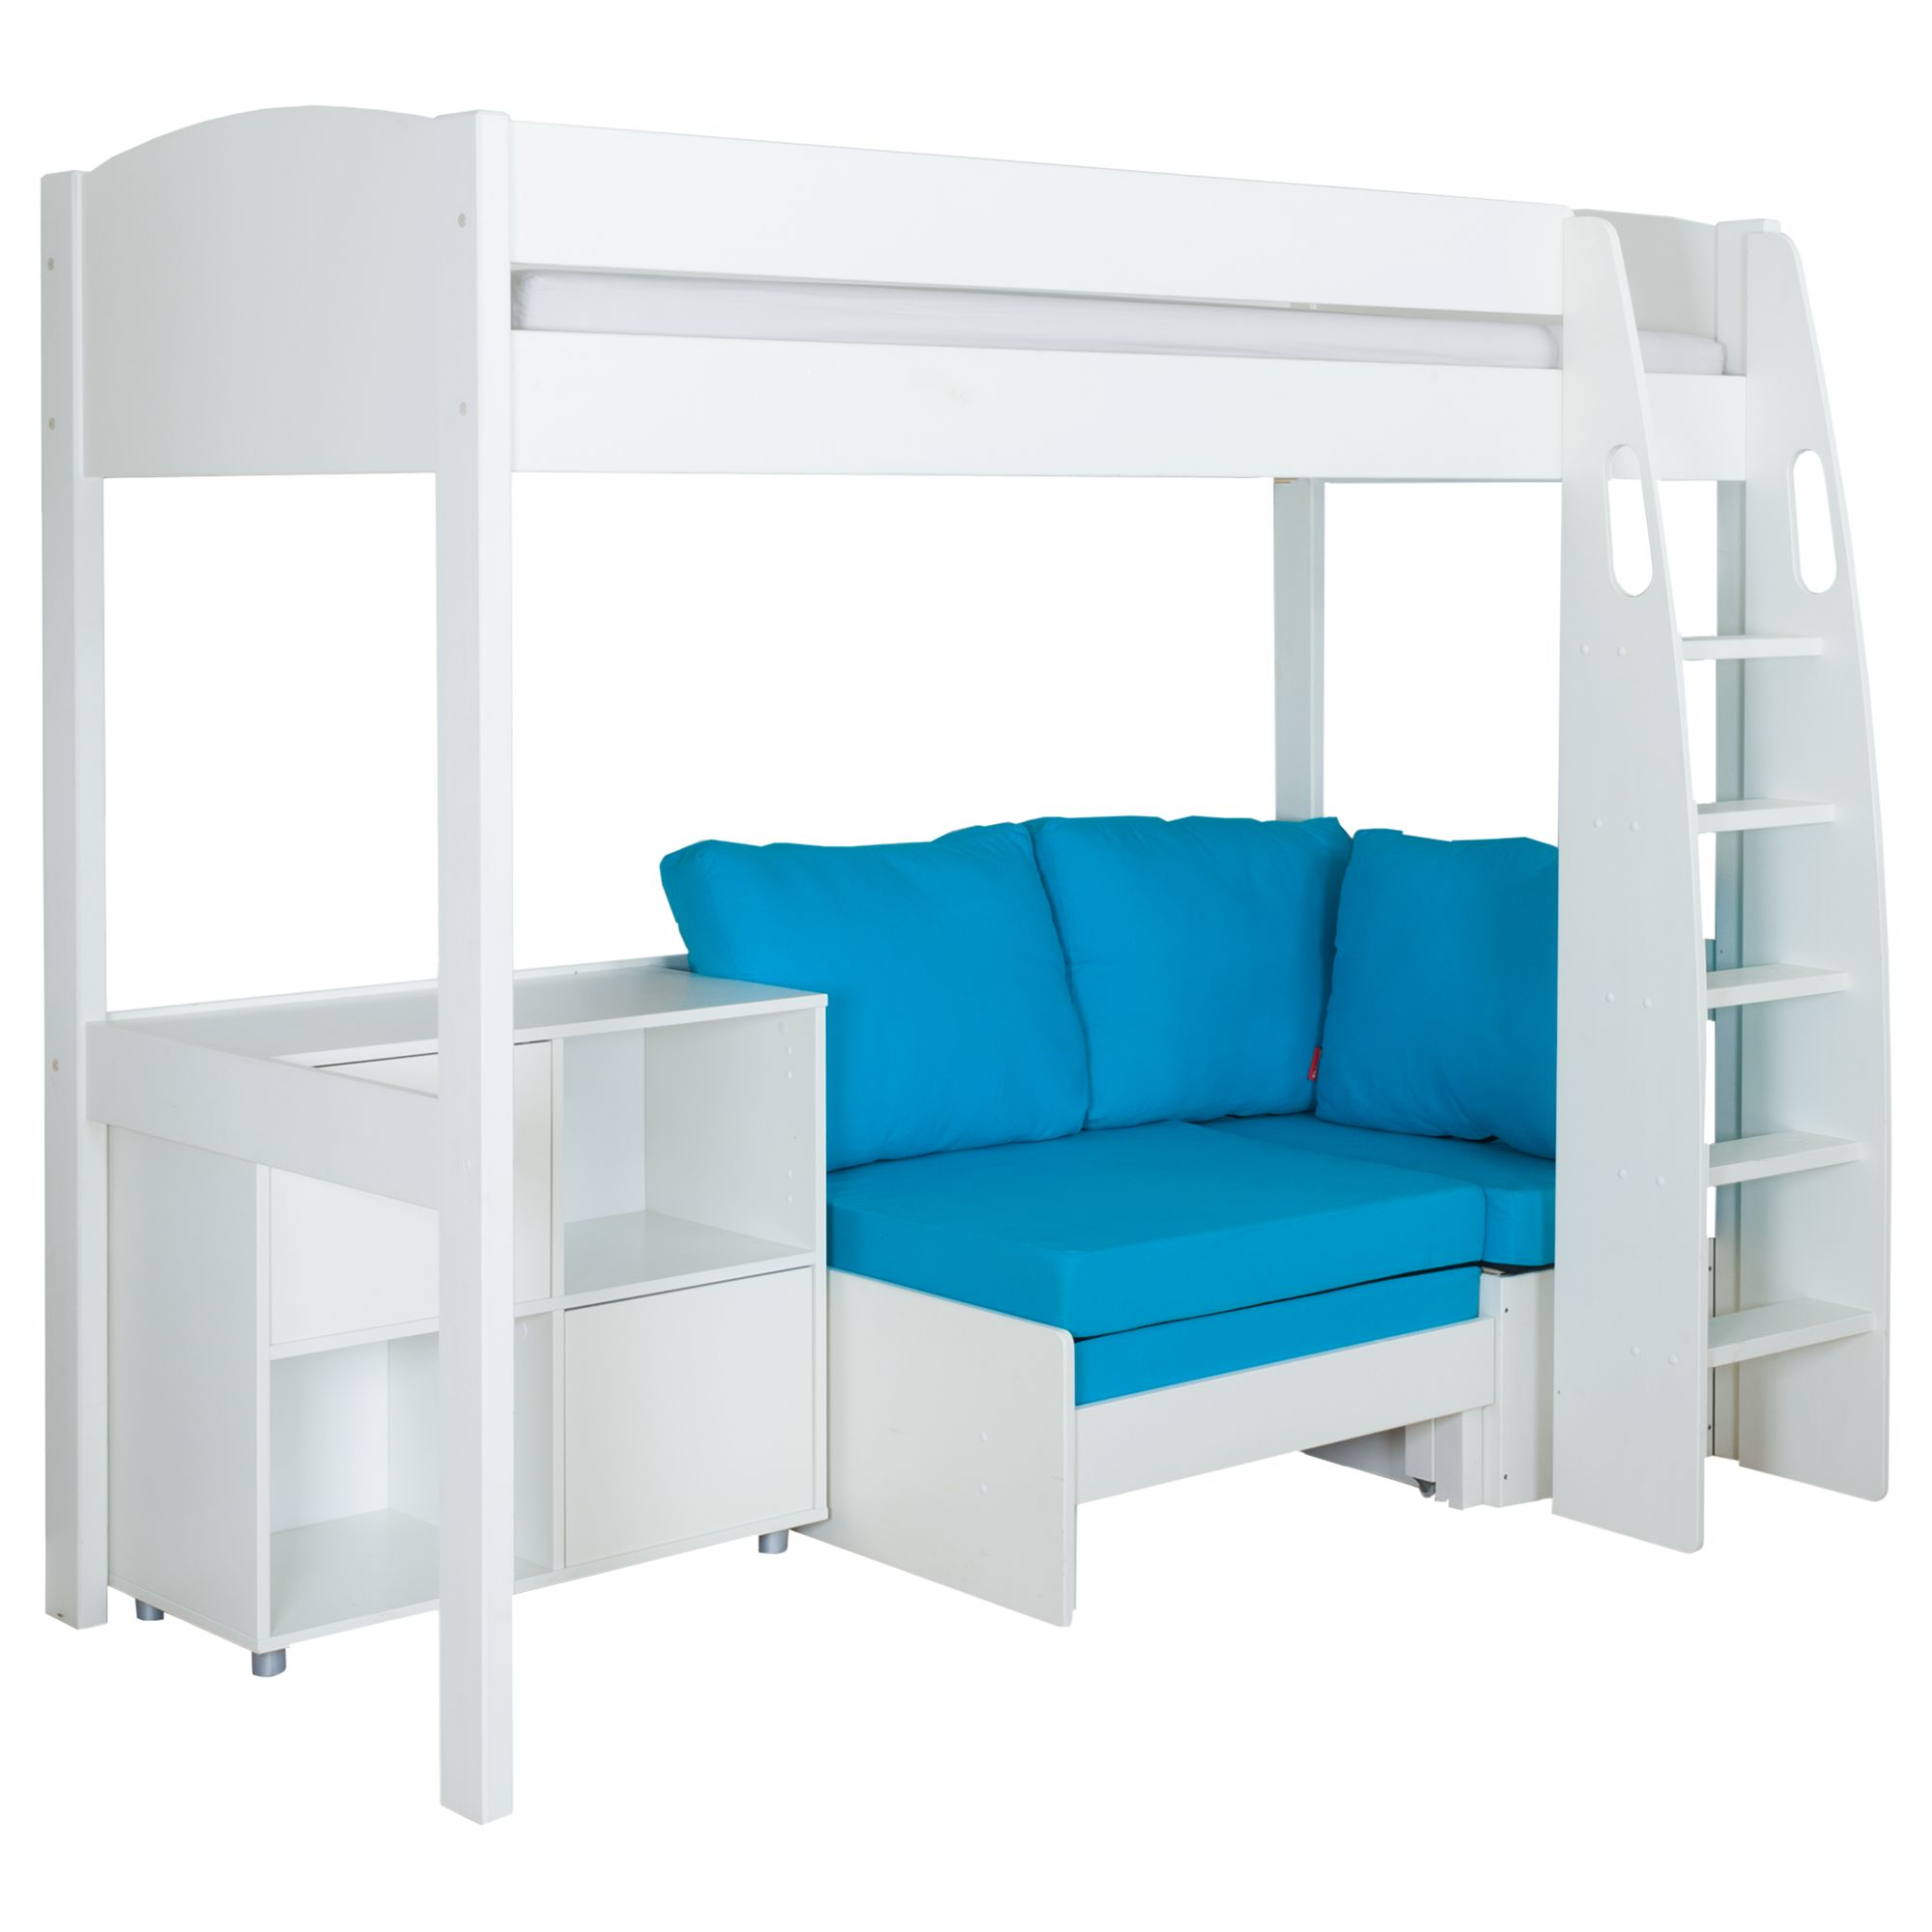 Stompa Stompa Uno S Plus High-Sleeper with White Headboard, Aqua Chair Bed and 2 Door Cube Unit